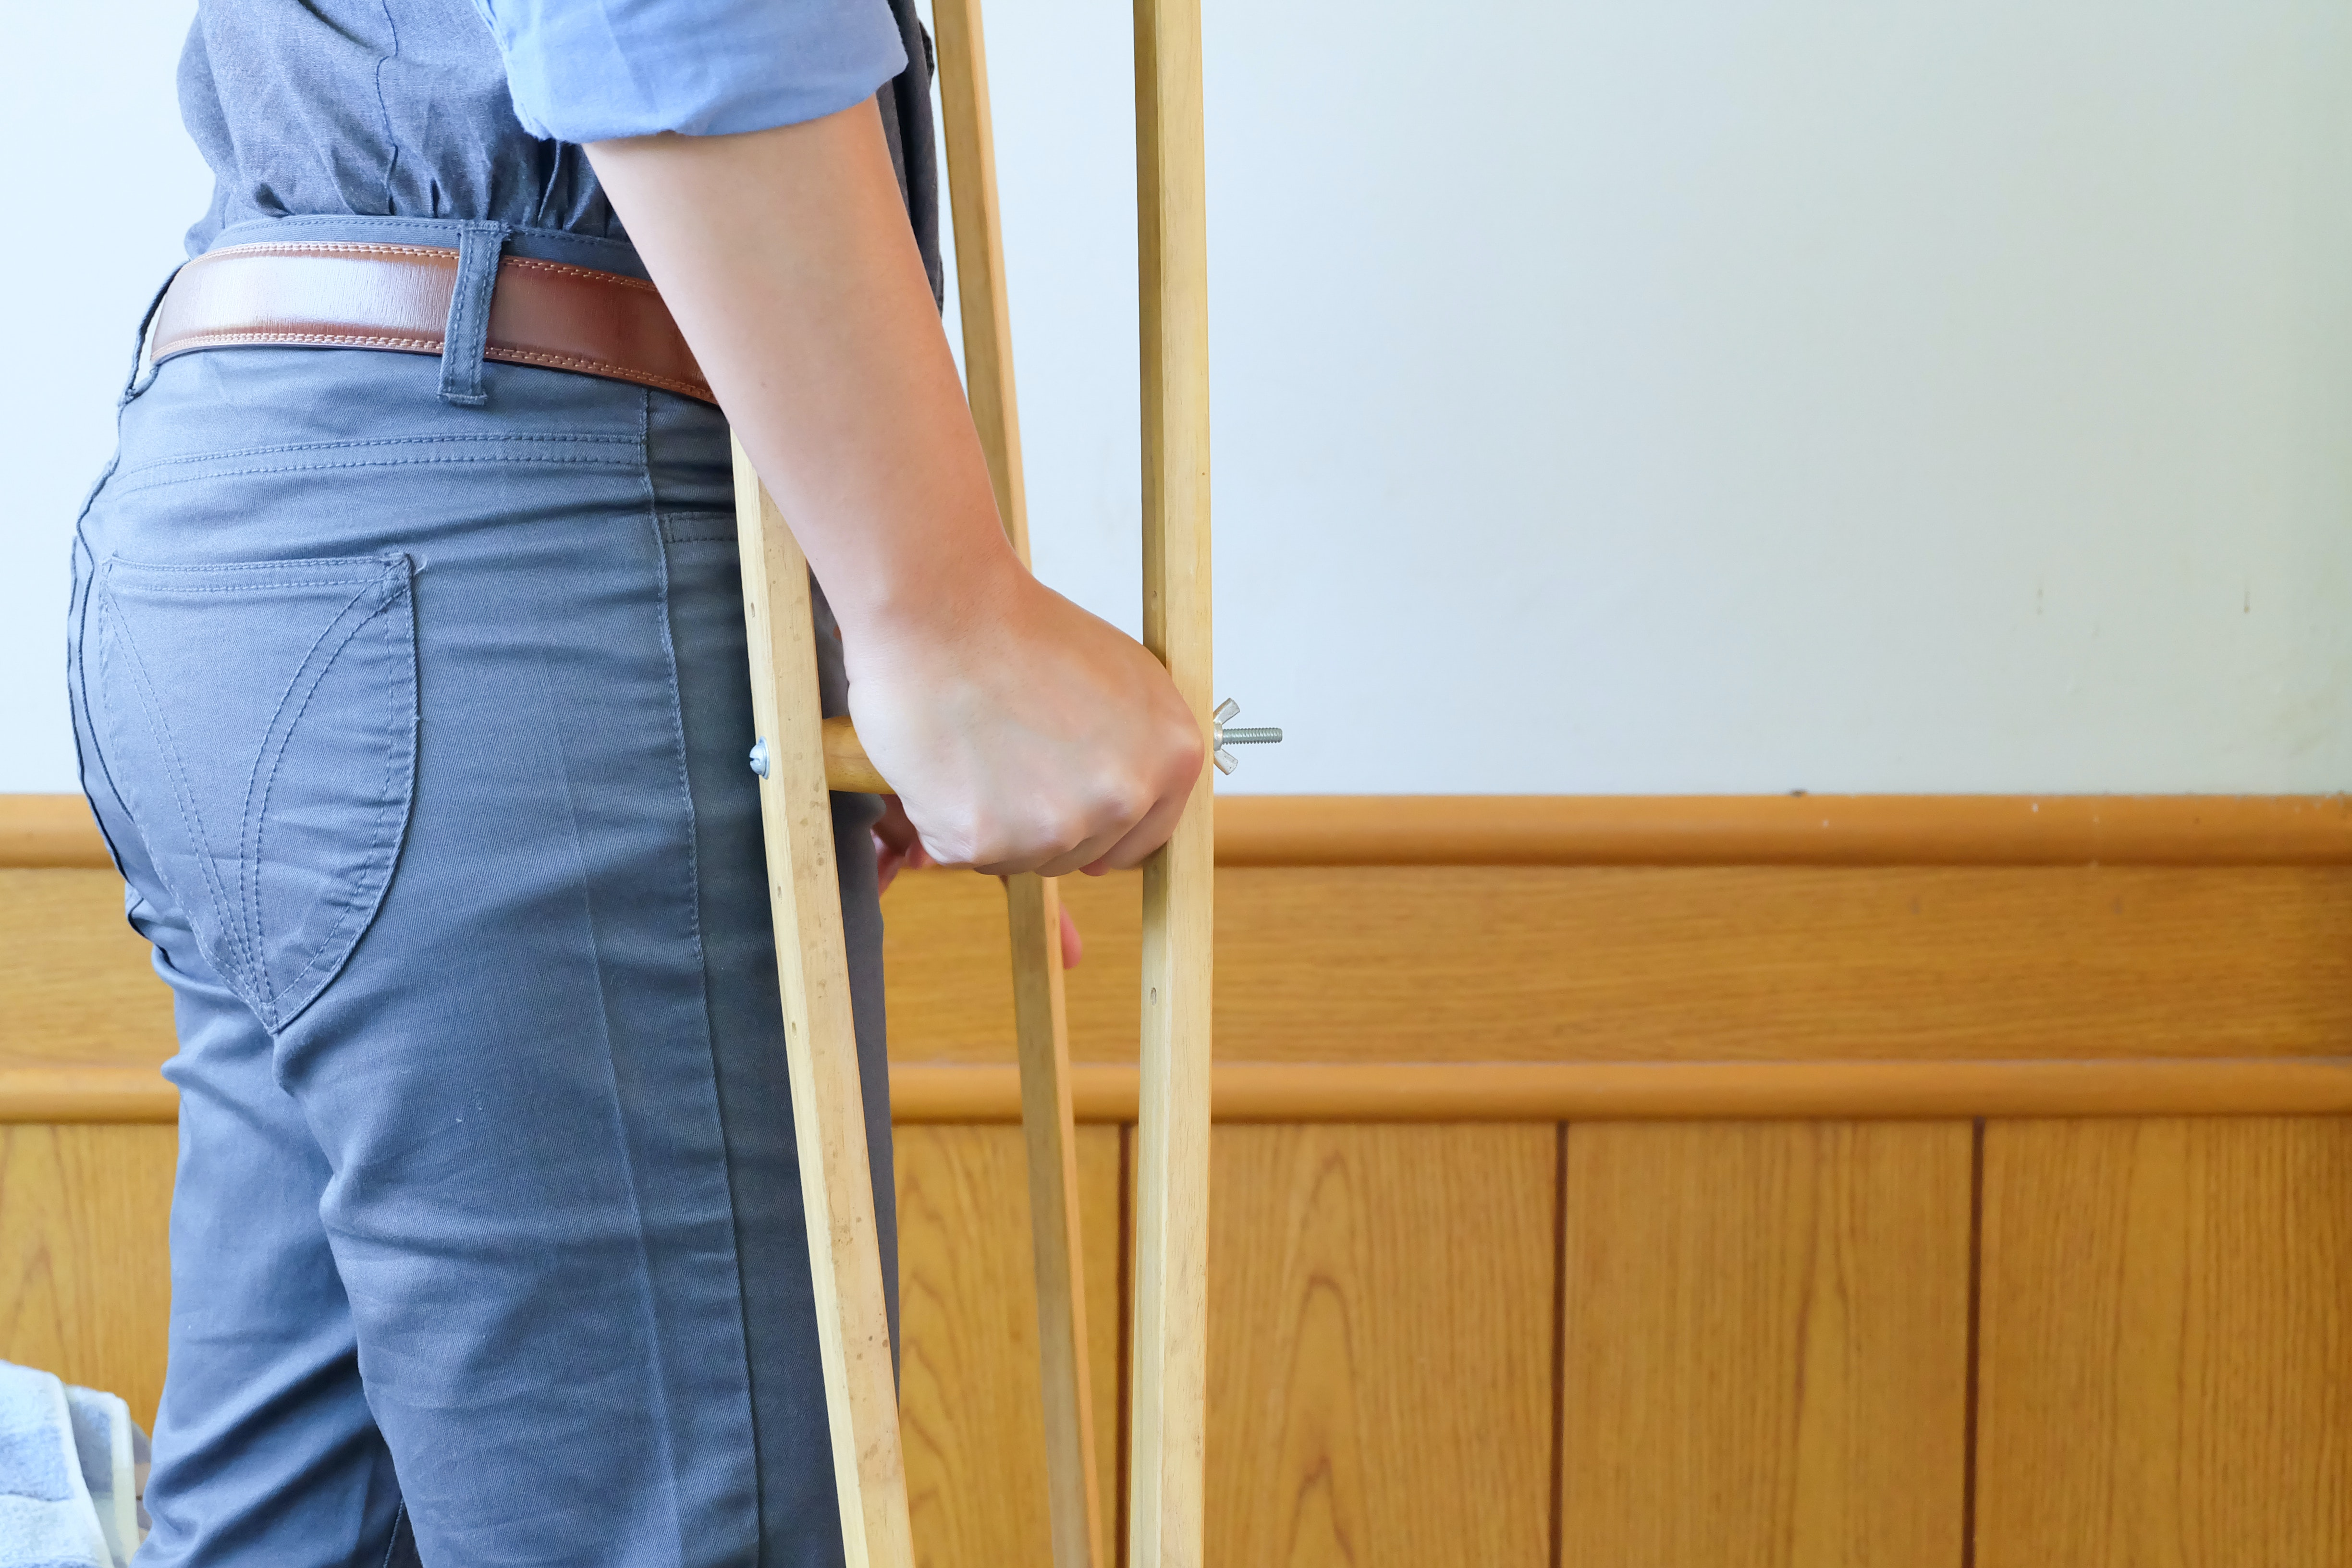 An image depicting a person suffering from limping symptoms